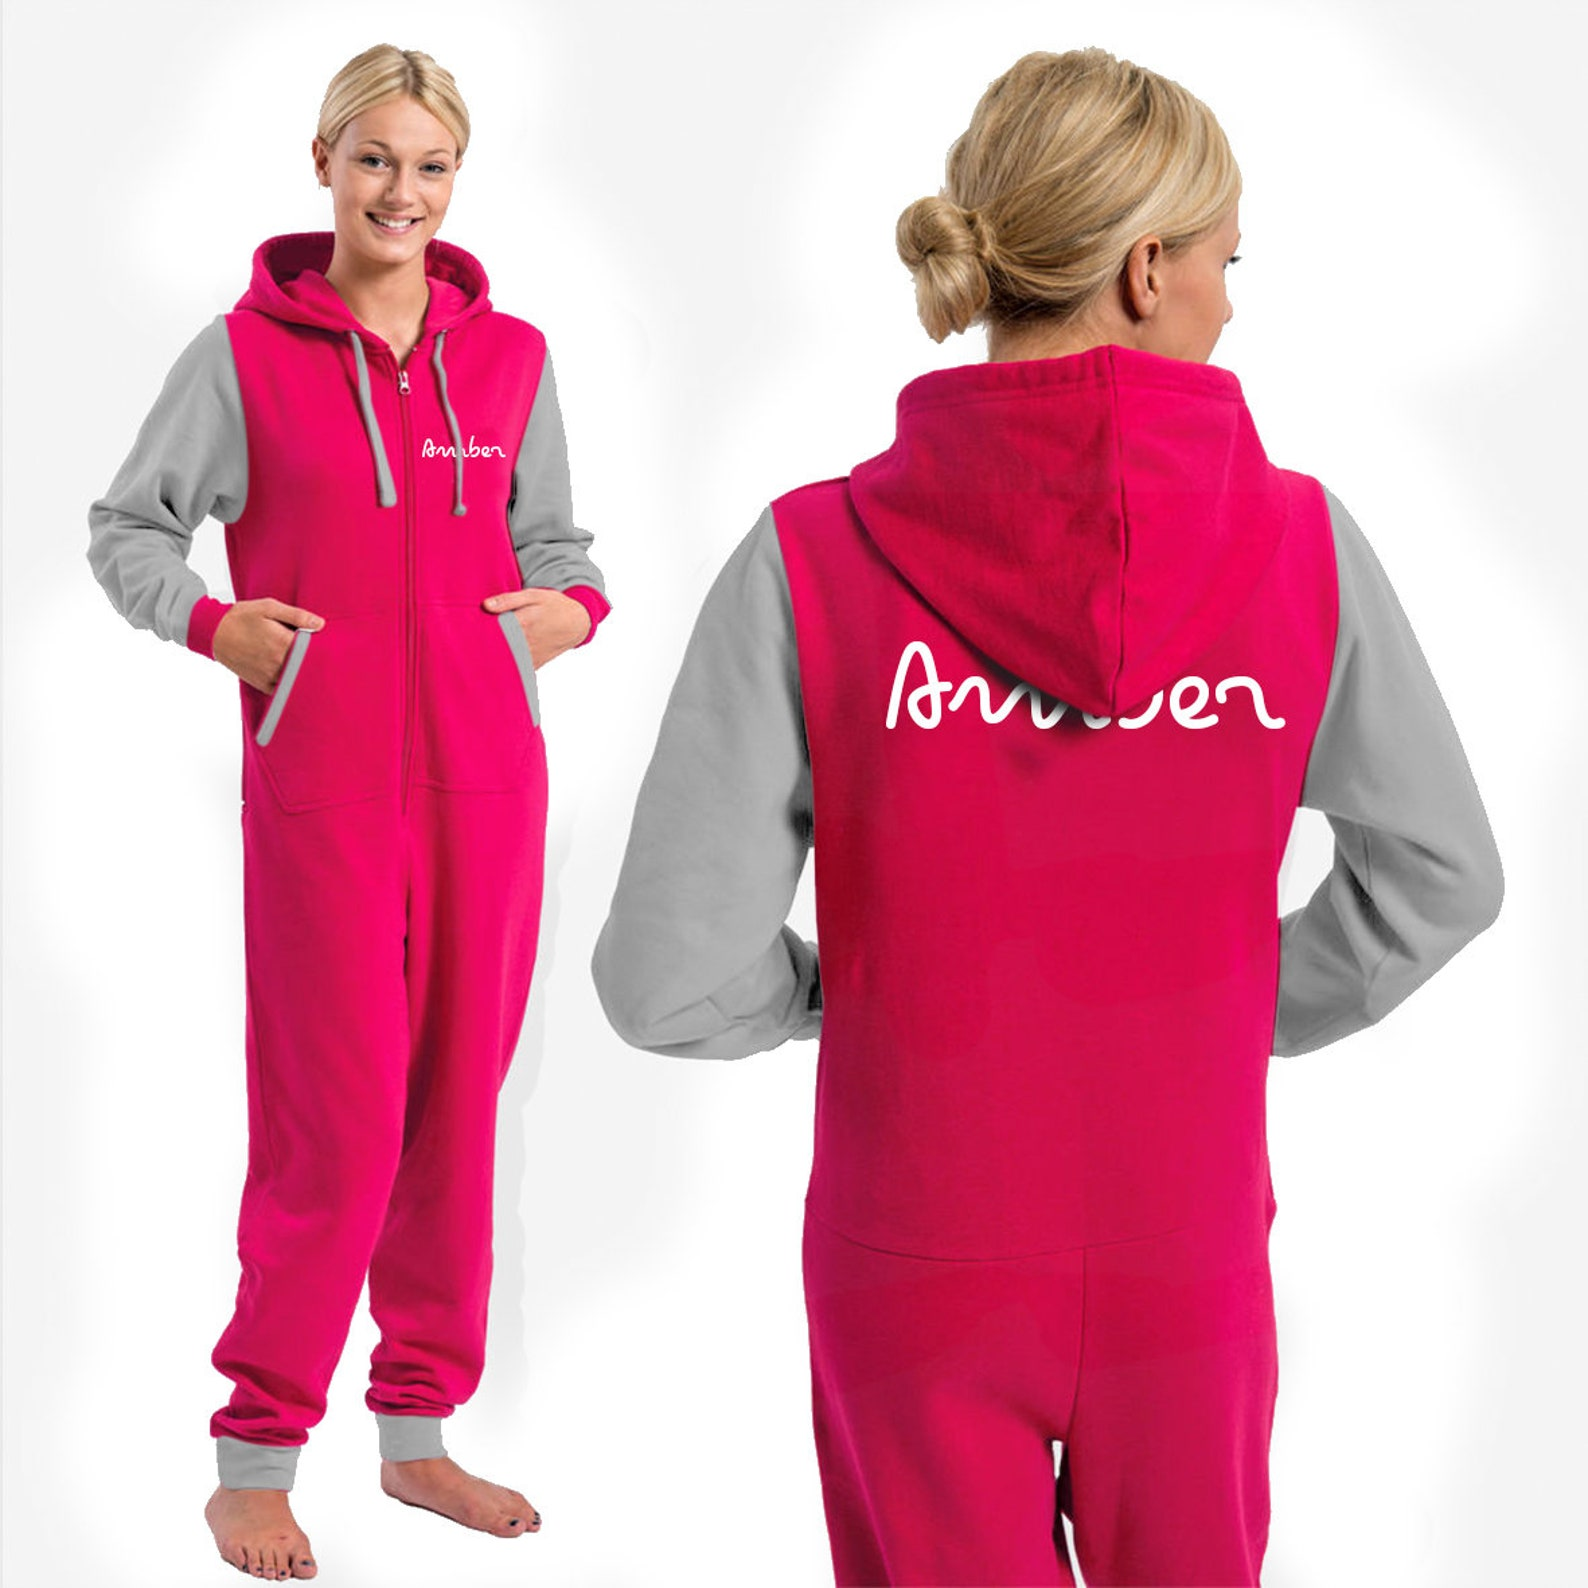 Love Islander All-In-One Loungewear for Couples